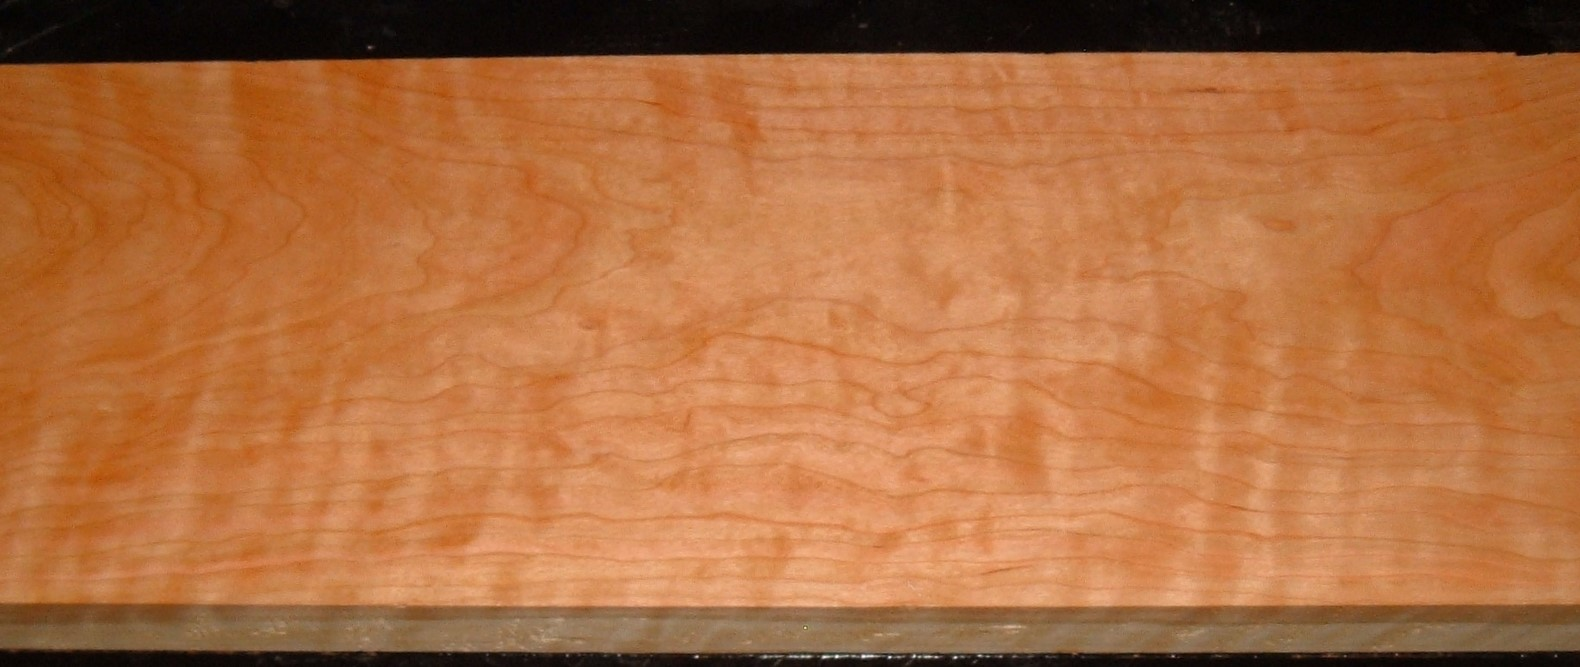 C2006-133JJ, 1-7/8x9-5/8x50, Curly Figured Cherry